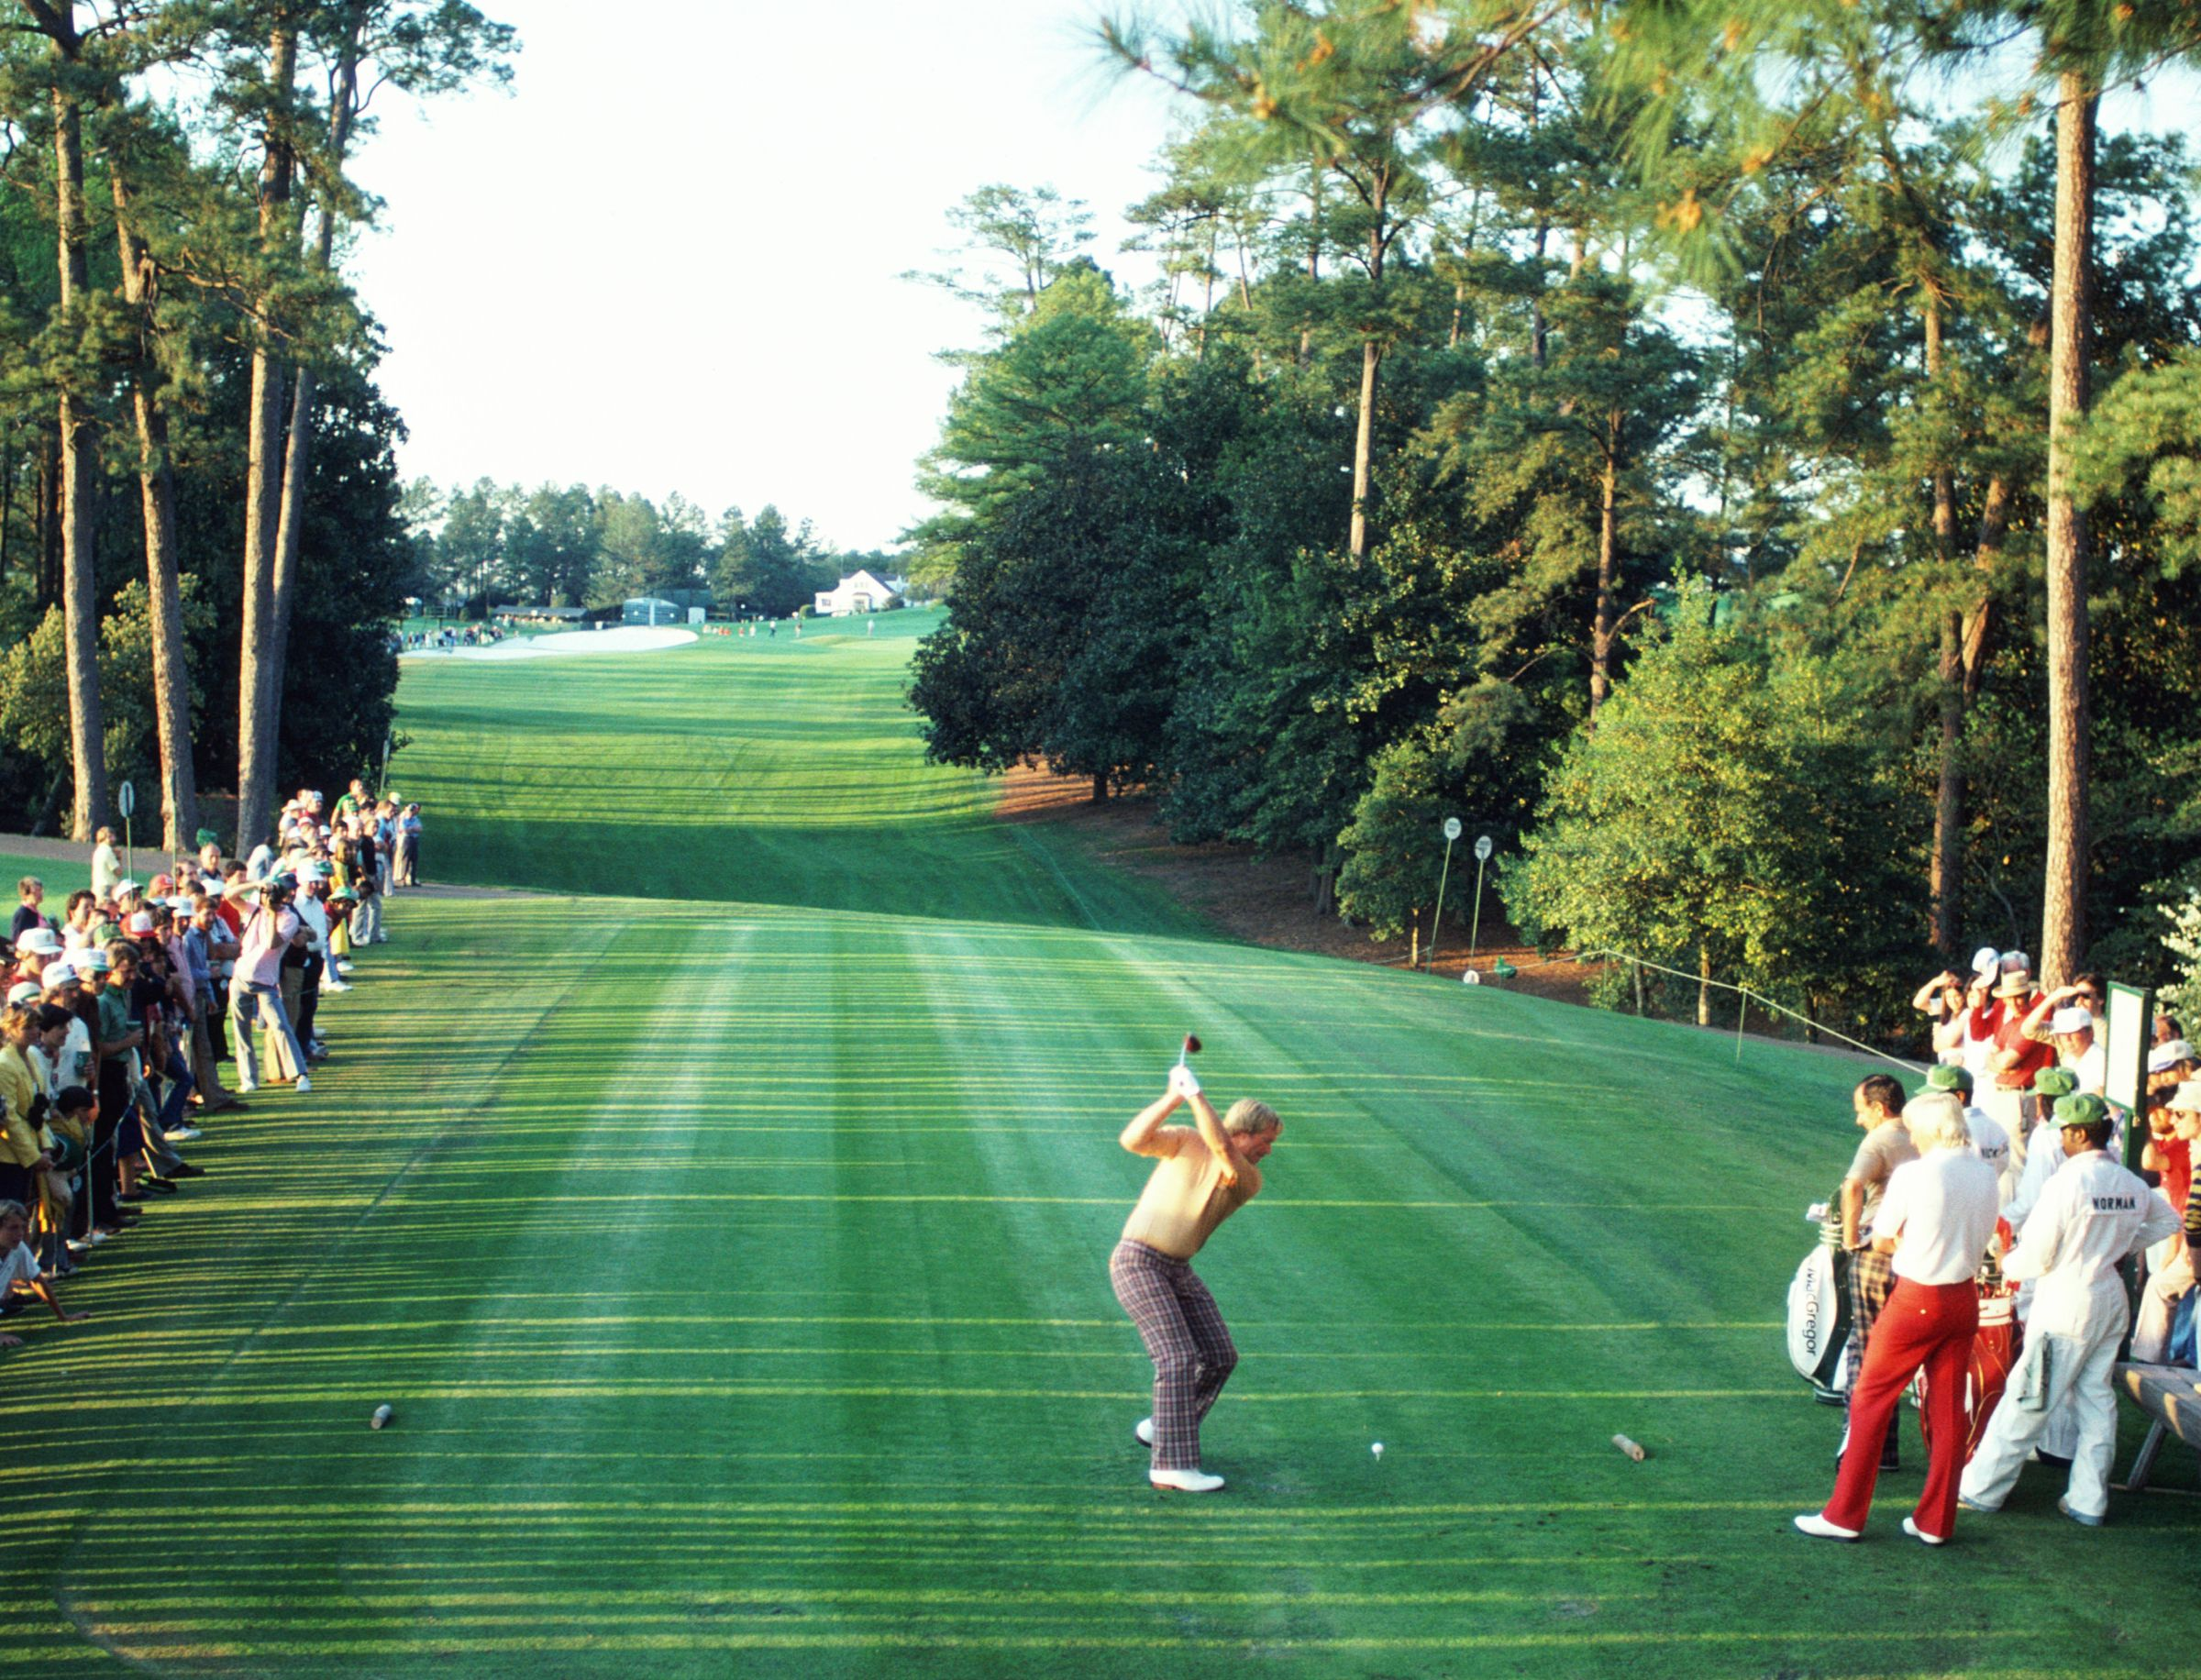 Jack Nicklaus in the 1986 Masters, teeing off on the 18th hole